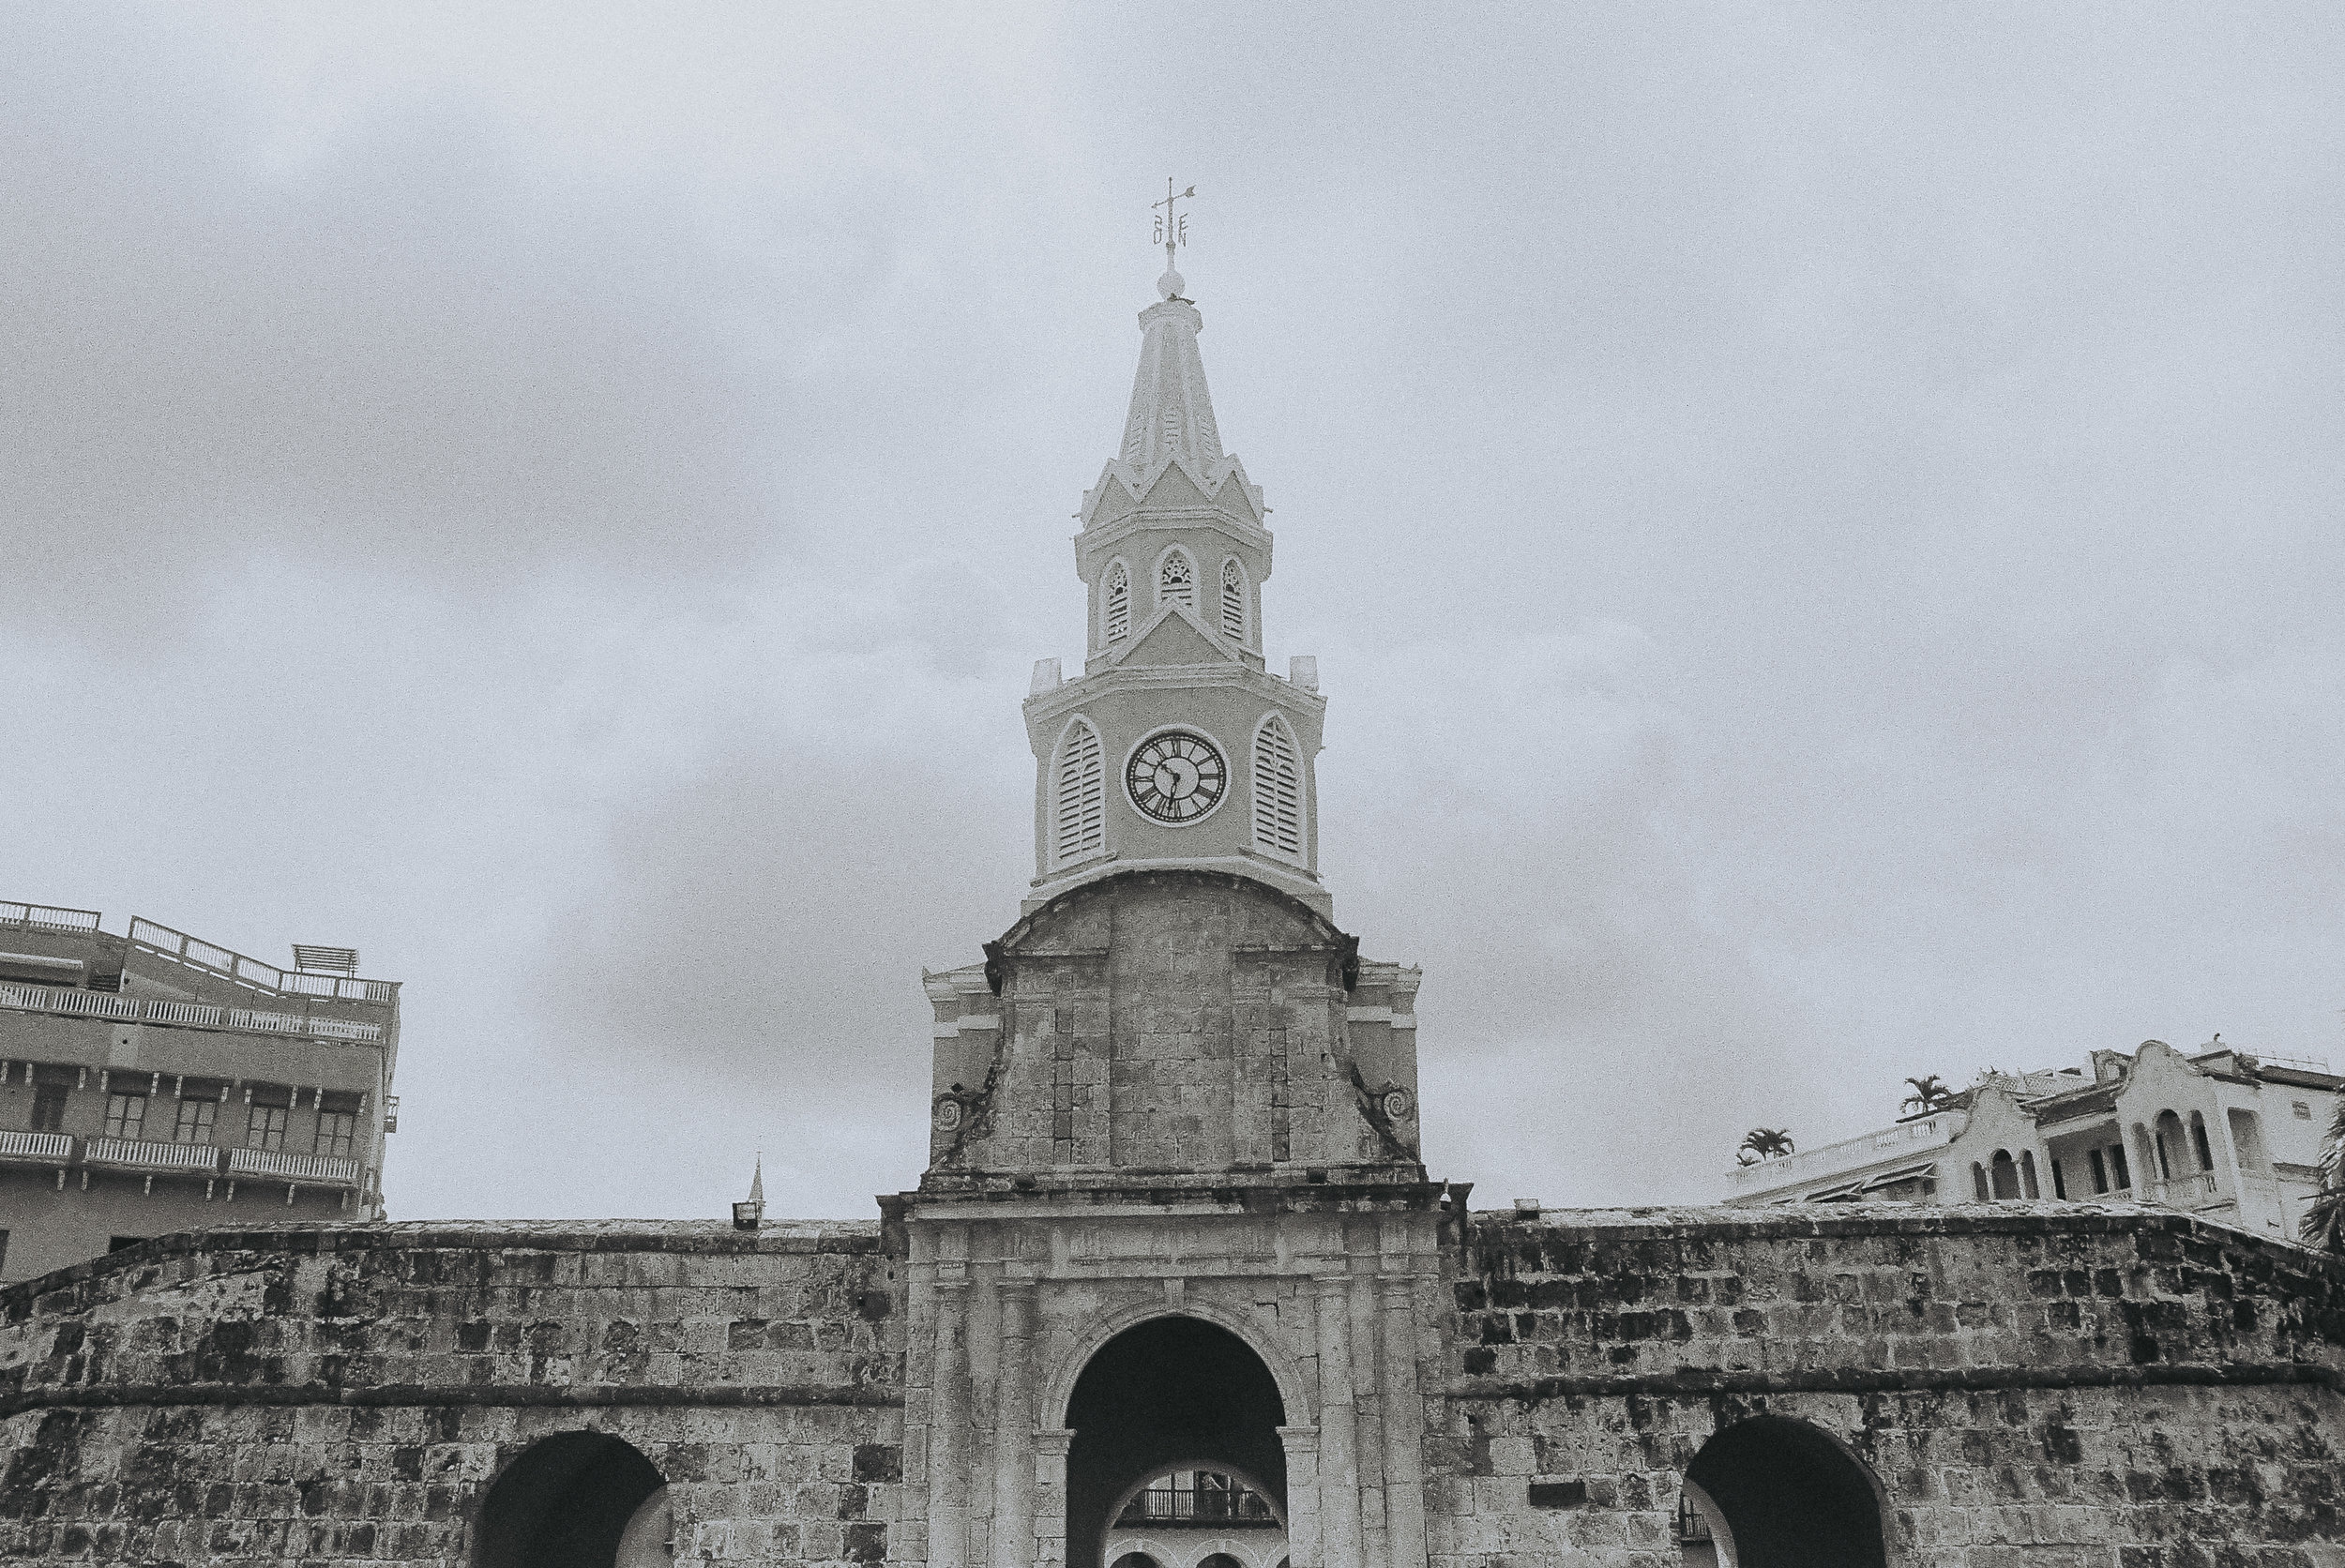 The main entrance to the walled city of Cartegena, Colombia.